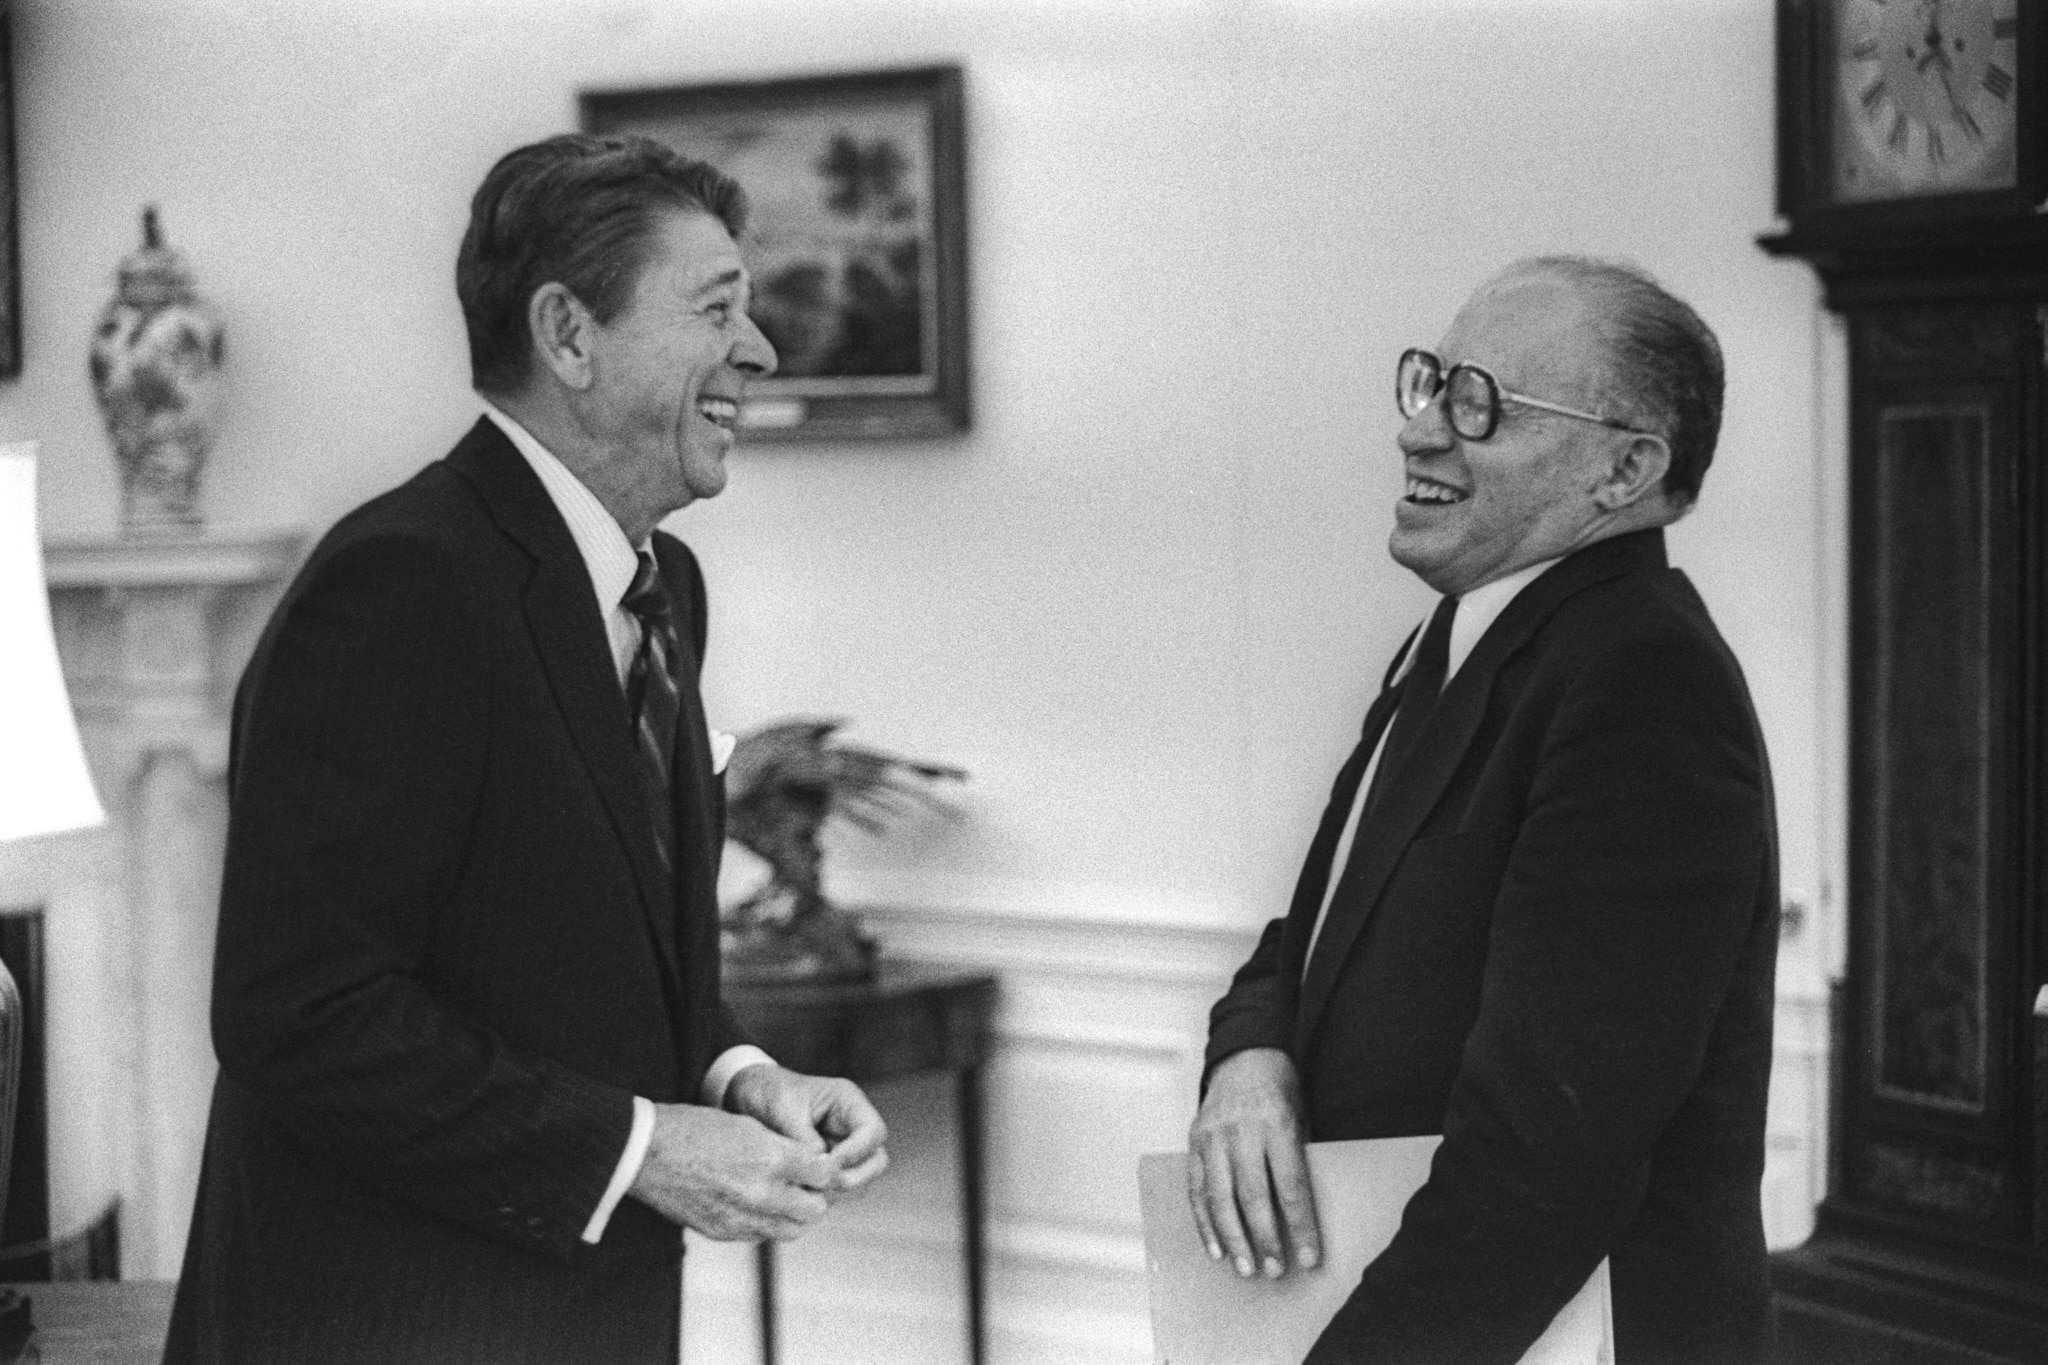 President Reagan laughing with a man (State Dept.)